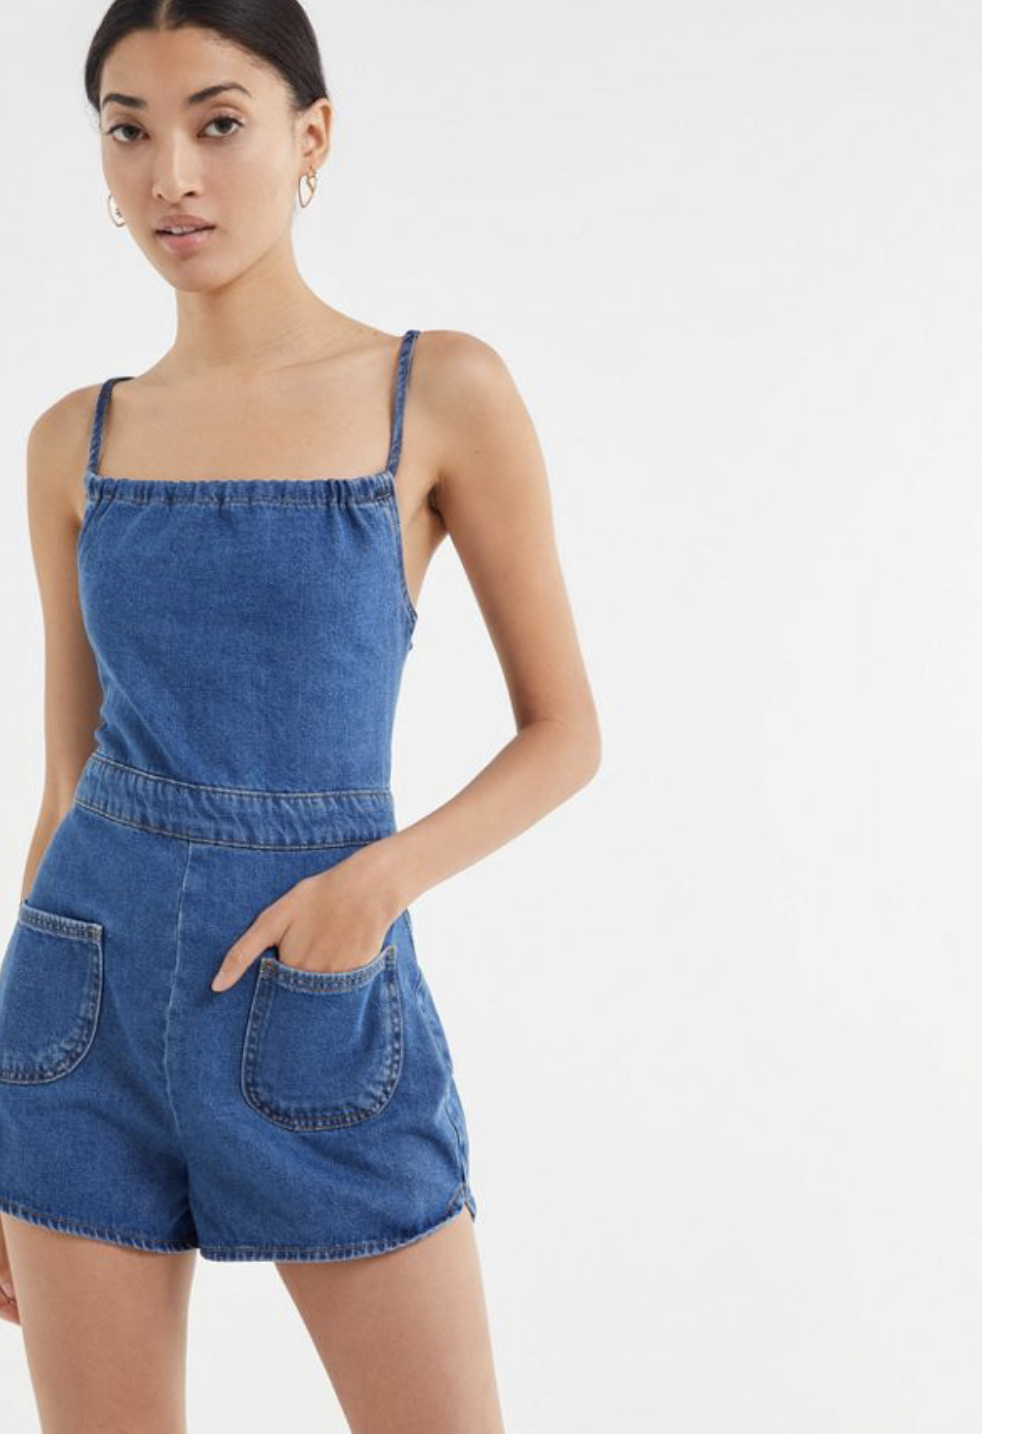 Urban outfitters .PNG